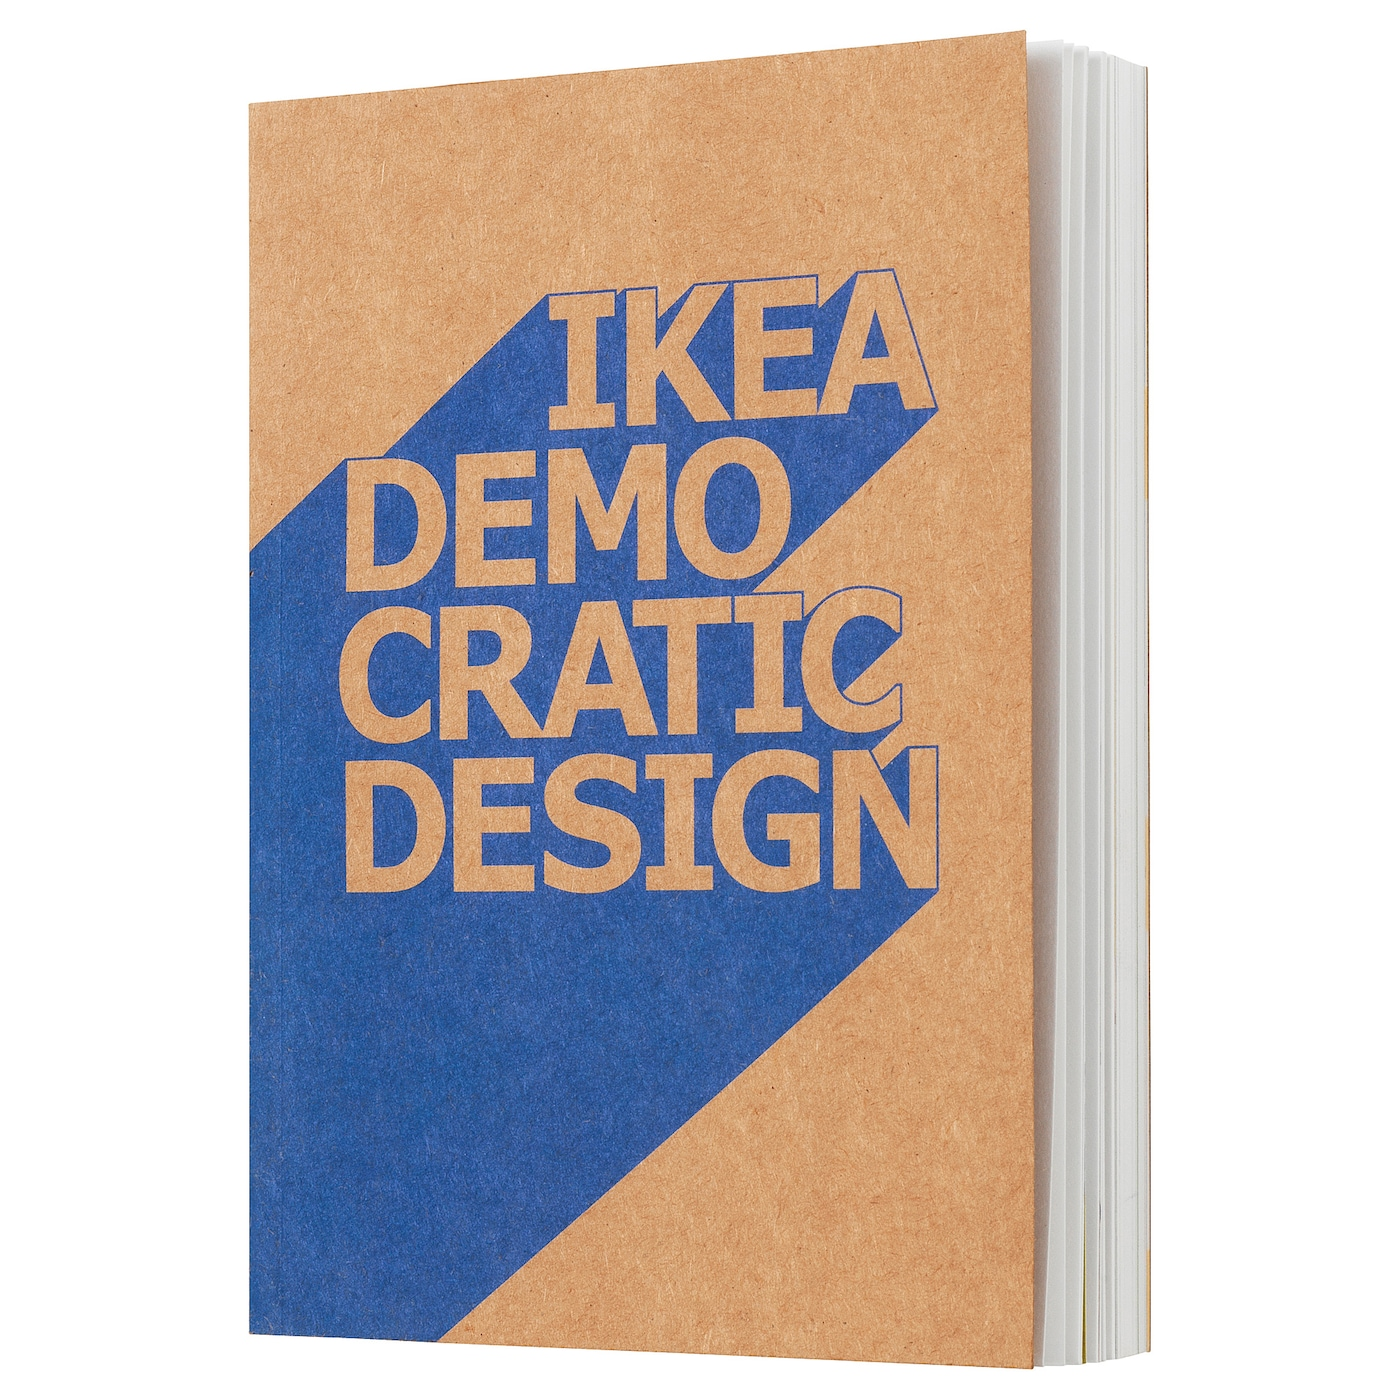 IKEA IKEA DEMOCRATIC DESIGN boek